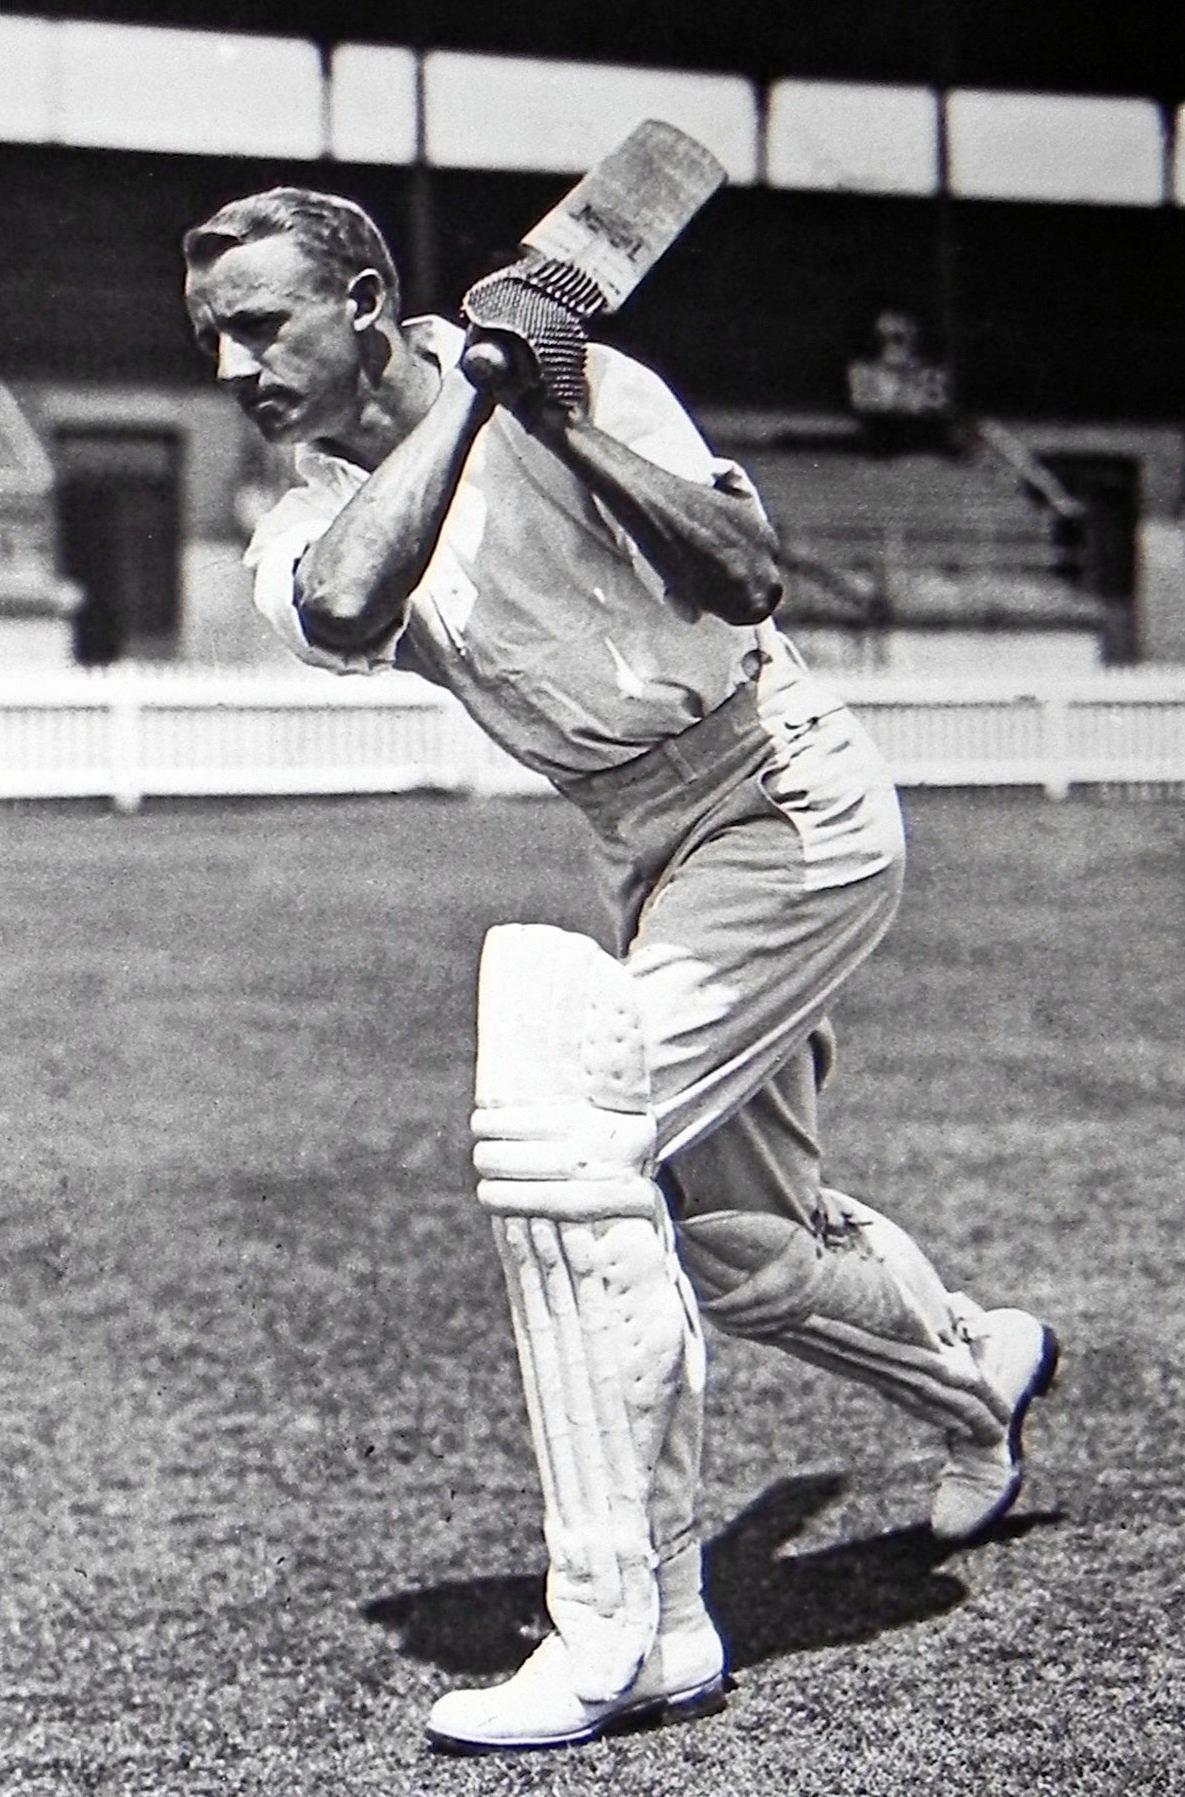 Don Bradman's rotation technique, which allowed him to score freely all around the wicket, has surfaced again in world cricket in the batting of Australian captain Steve Smith.